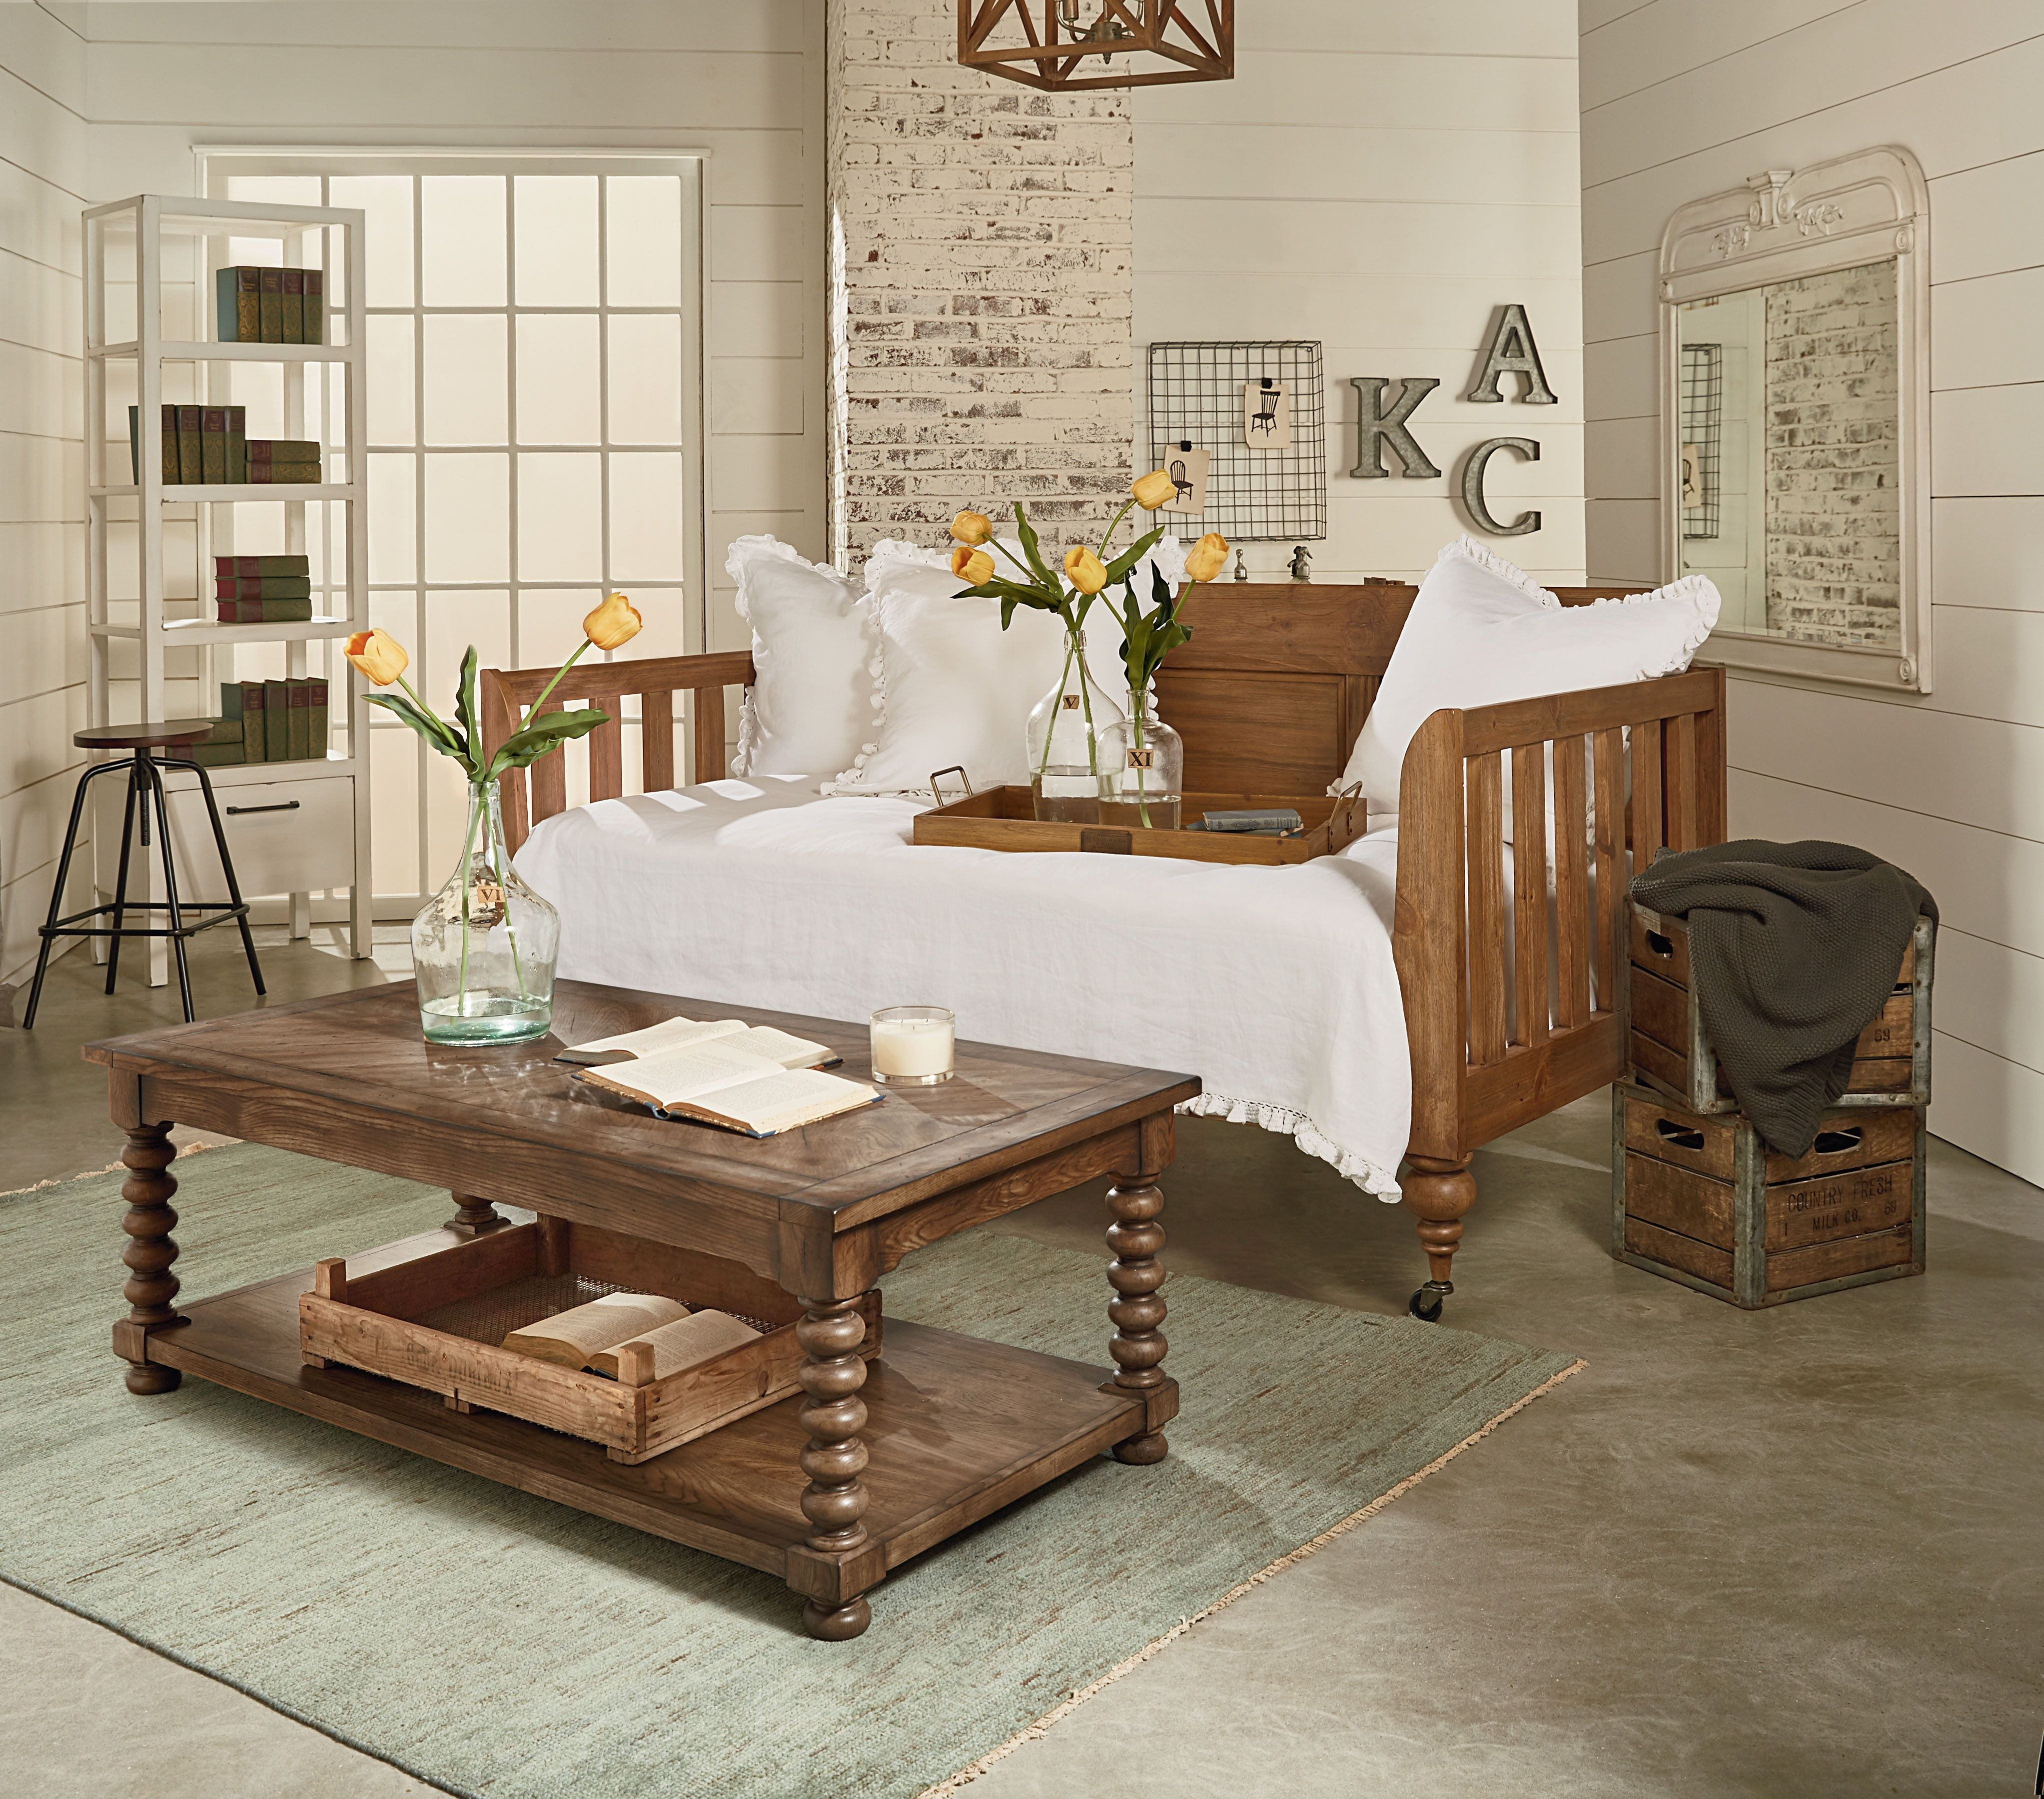 Magnificent Ashley Furniture Magnolia Home With Magnolia Home For Magnolia Home Homestead 4 Piece Sectionals By Joanna Gaines (View 23 of 30)